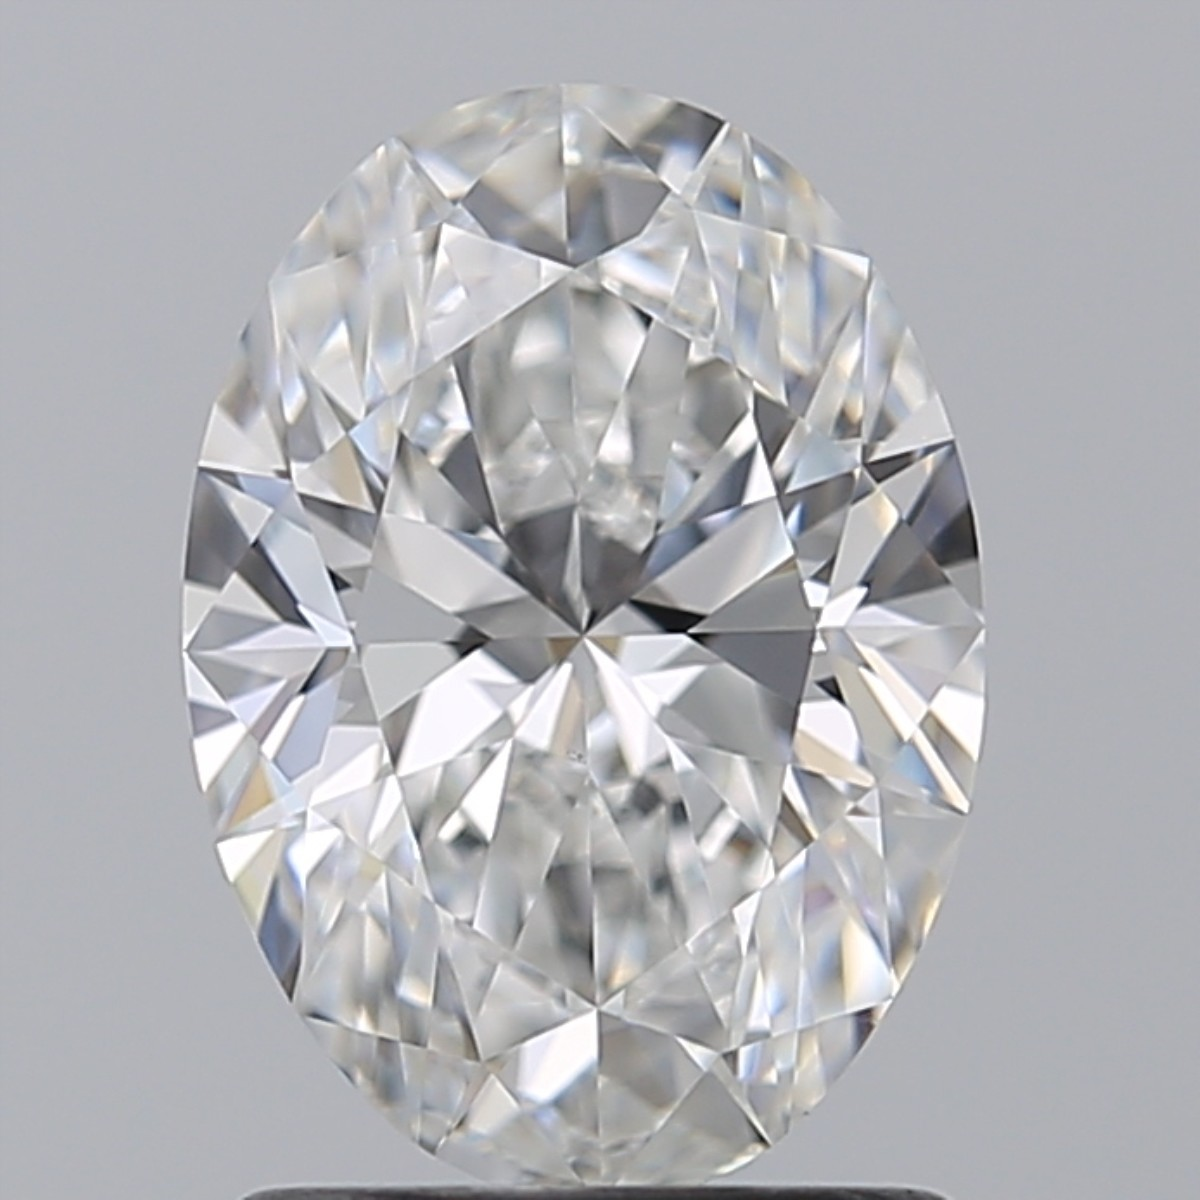 1.31 Carat Oval Diamond (E/VS1)